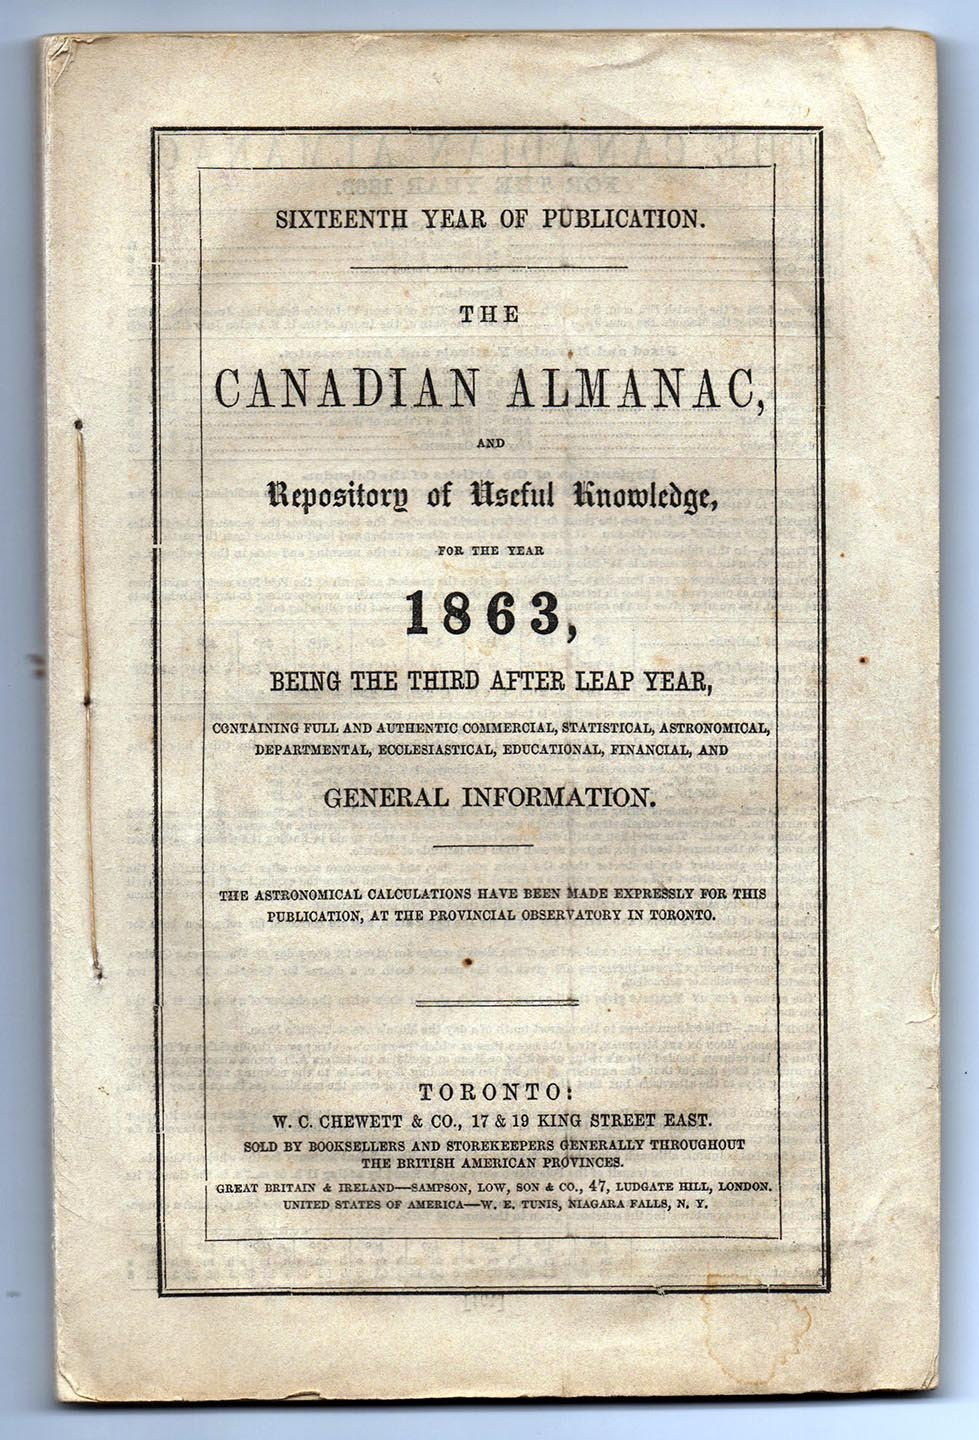 The Canadian Almanac and Repository of Useful Knowledge for the Year 1863